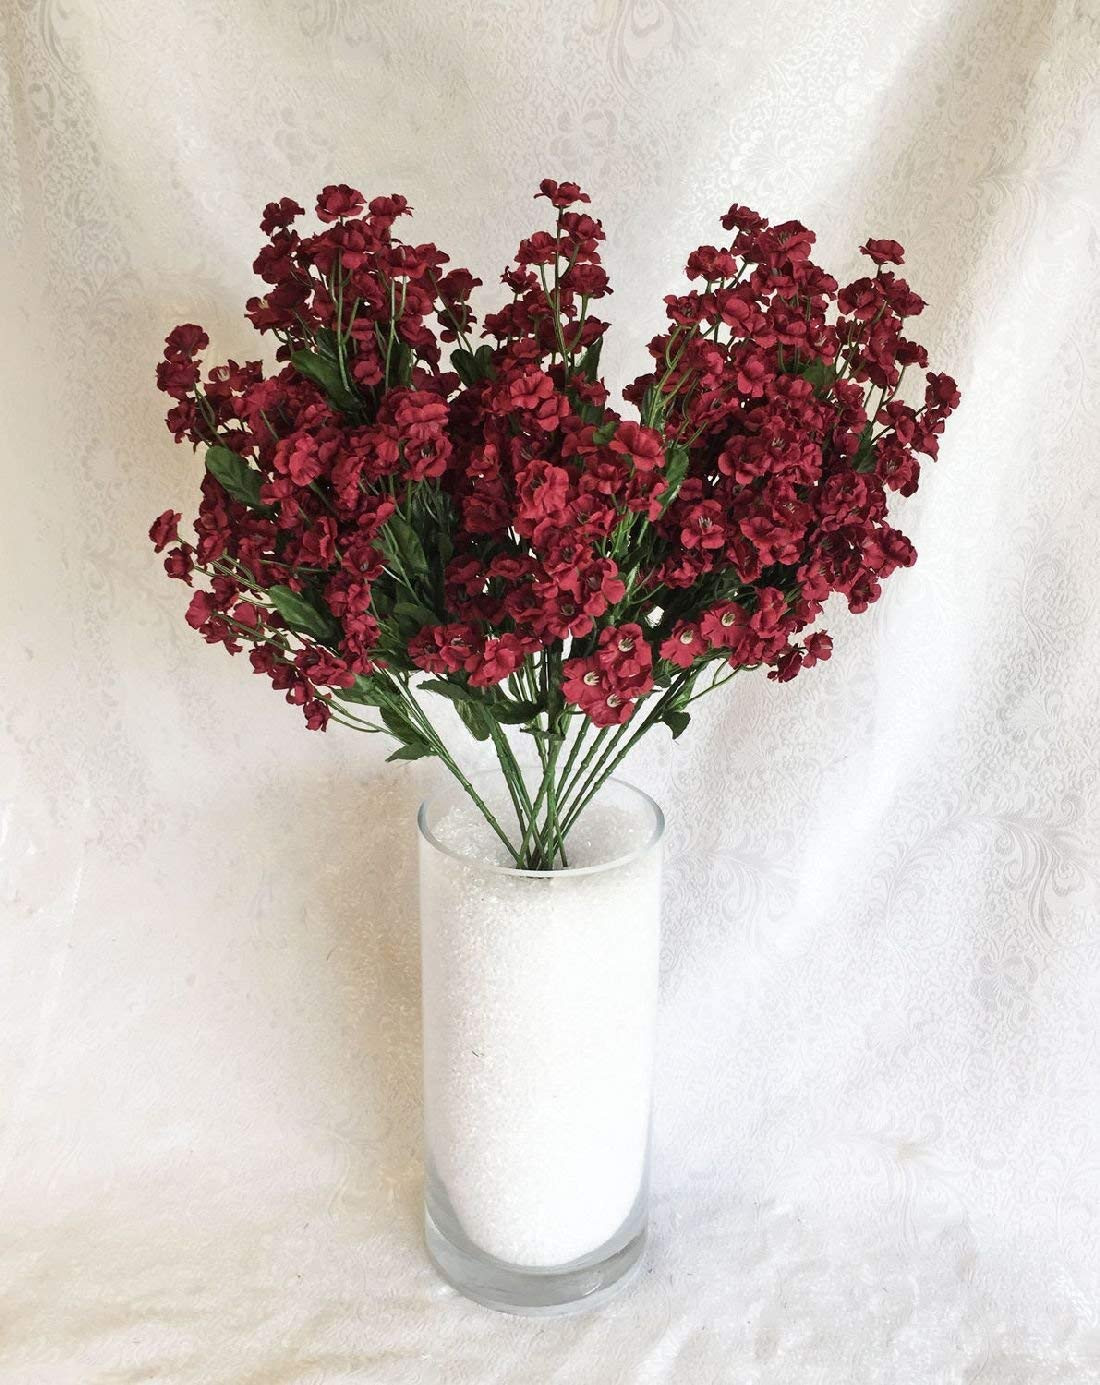 small artificial flowers in vase of amazon com 12 babys breath burgundy gypsophila silk wedding in amazon com 12 babys breath burgundy gypsophila silk wedding flowers centerpieces bouquet home kitchen